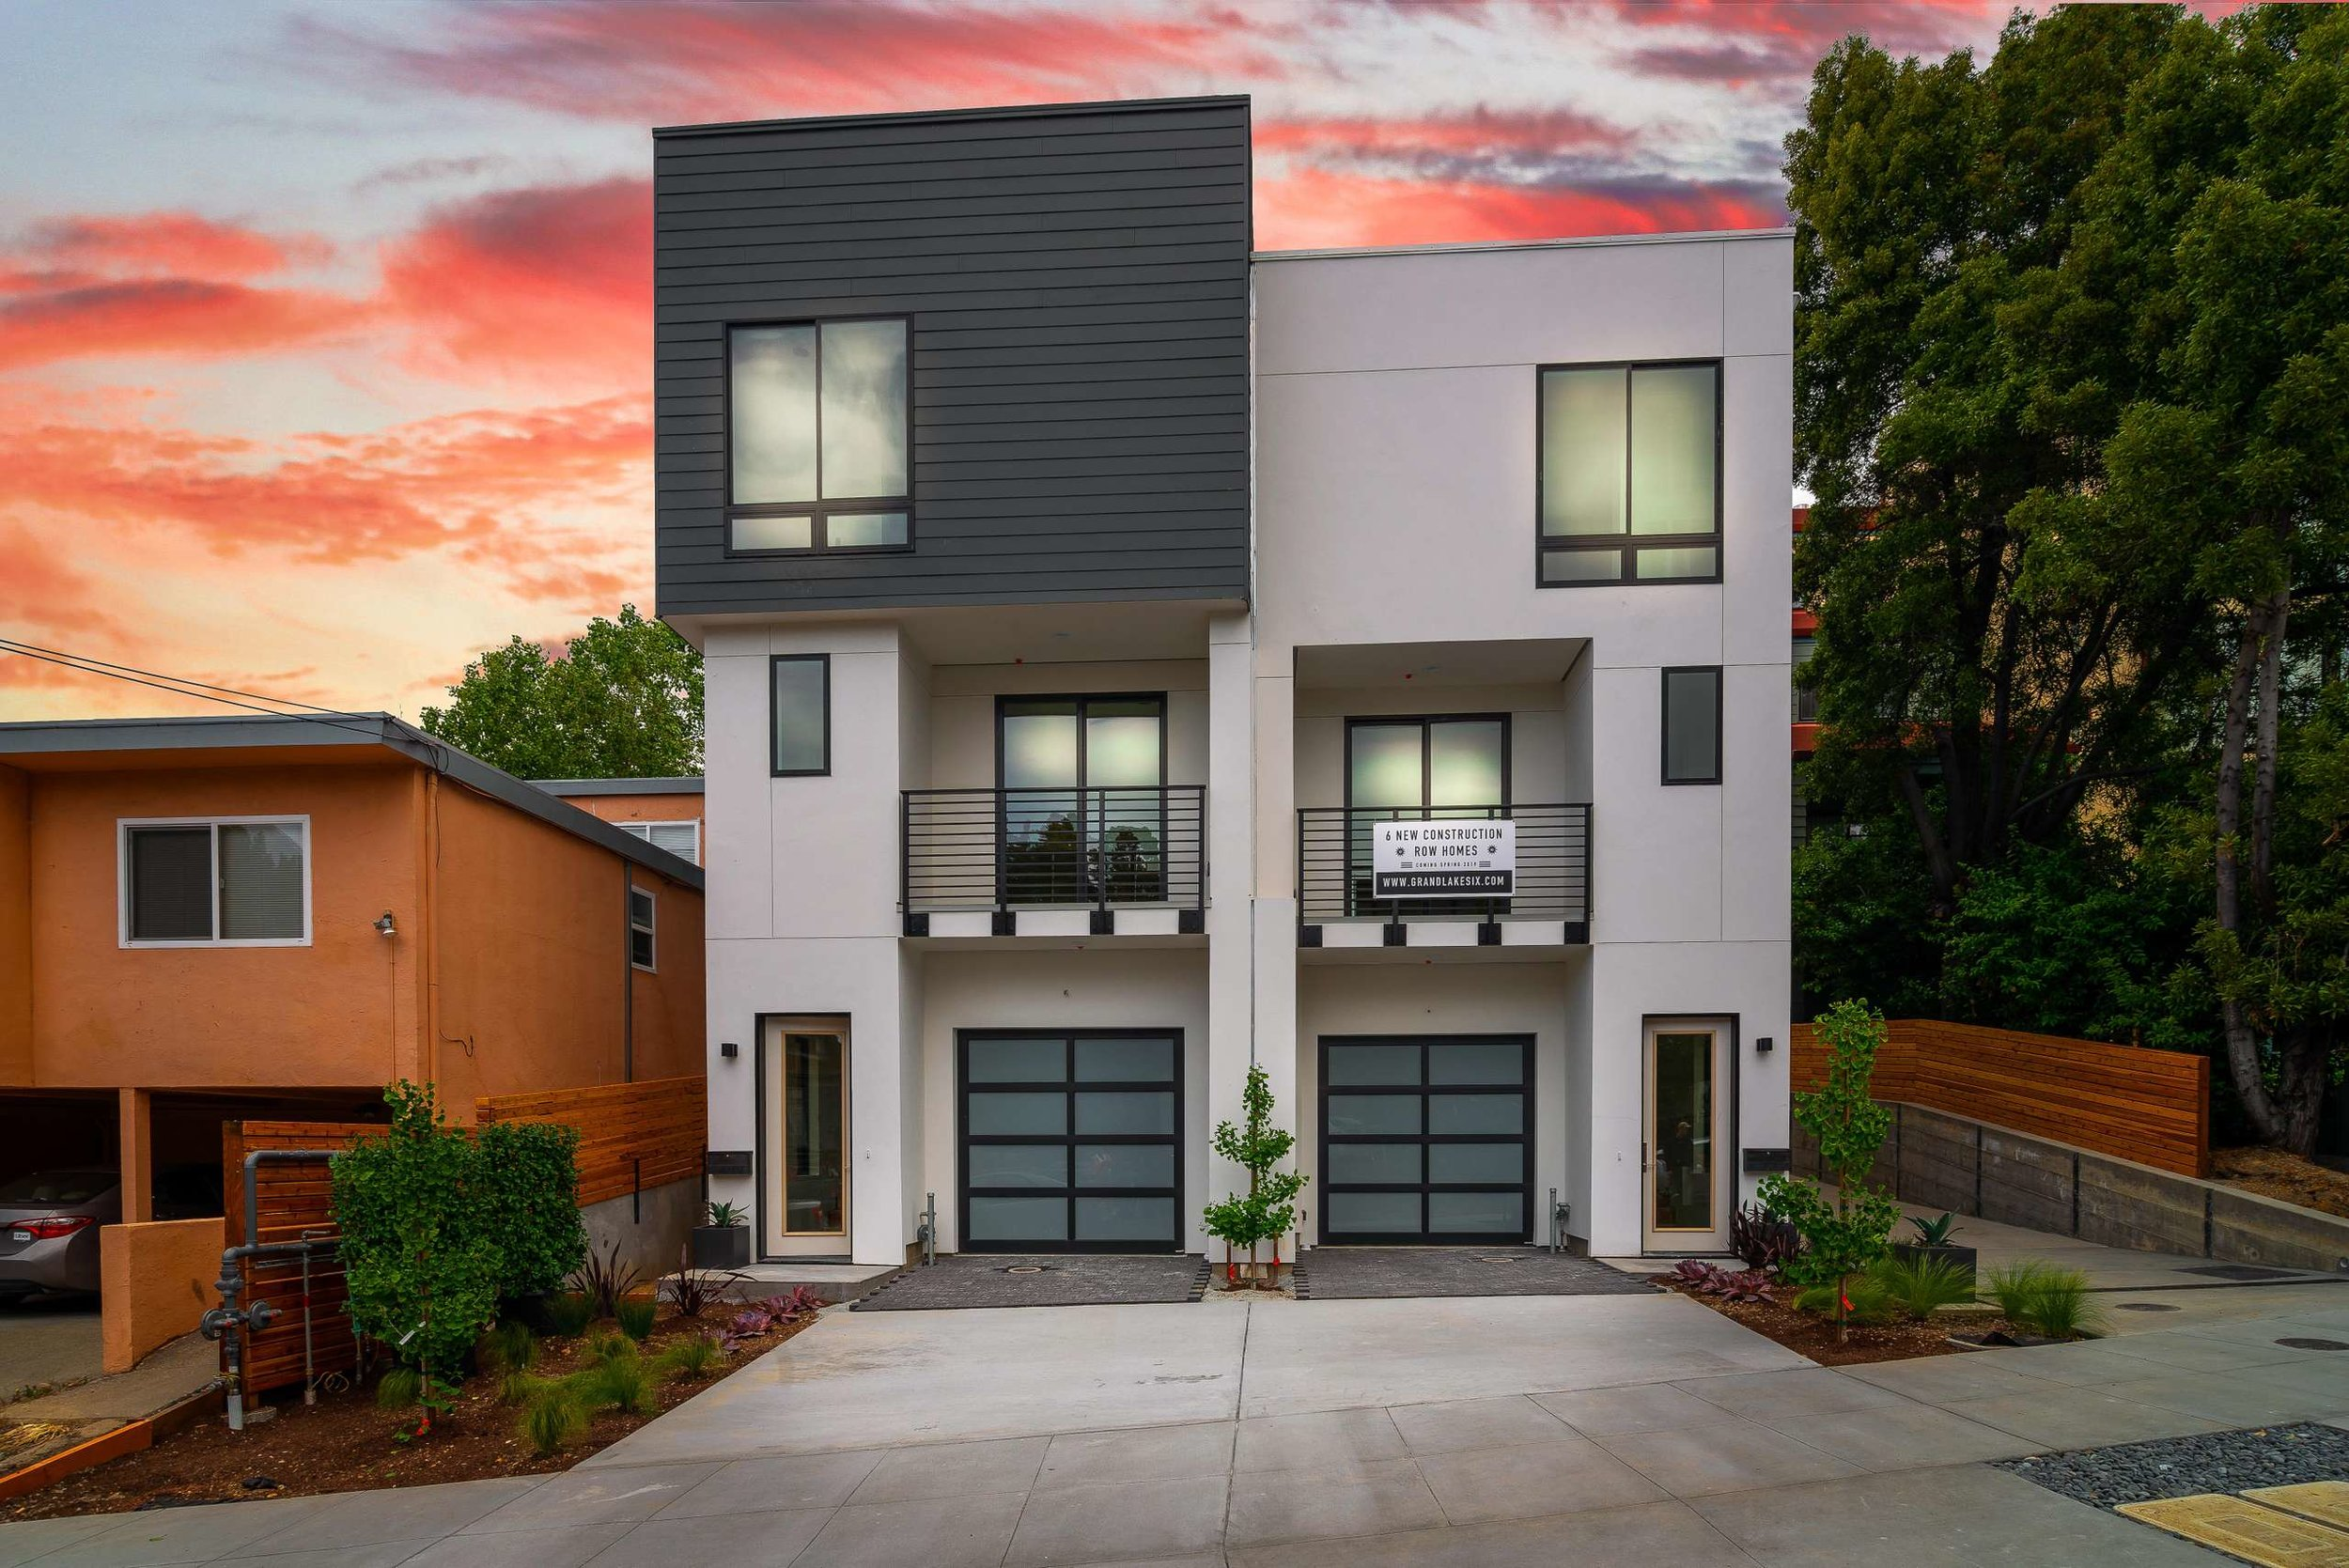 6 BRAND NEW CONTEMPORARY ROW HOMES IN GRAND LAKE